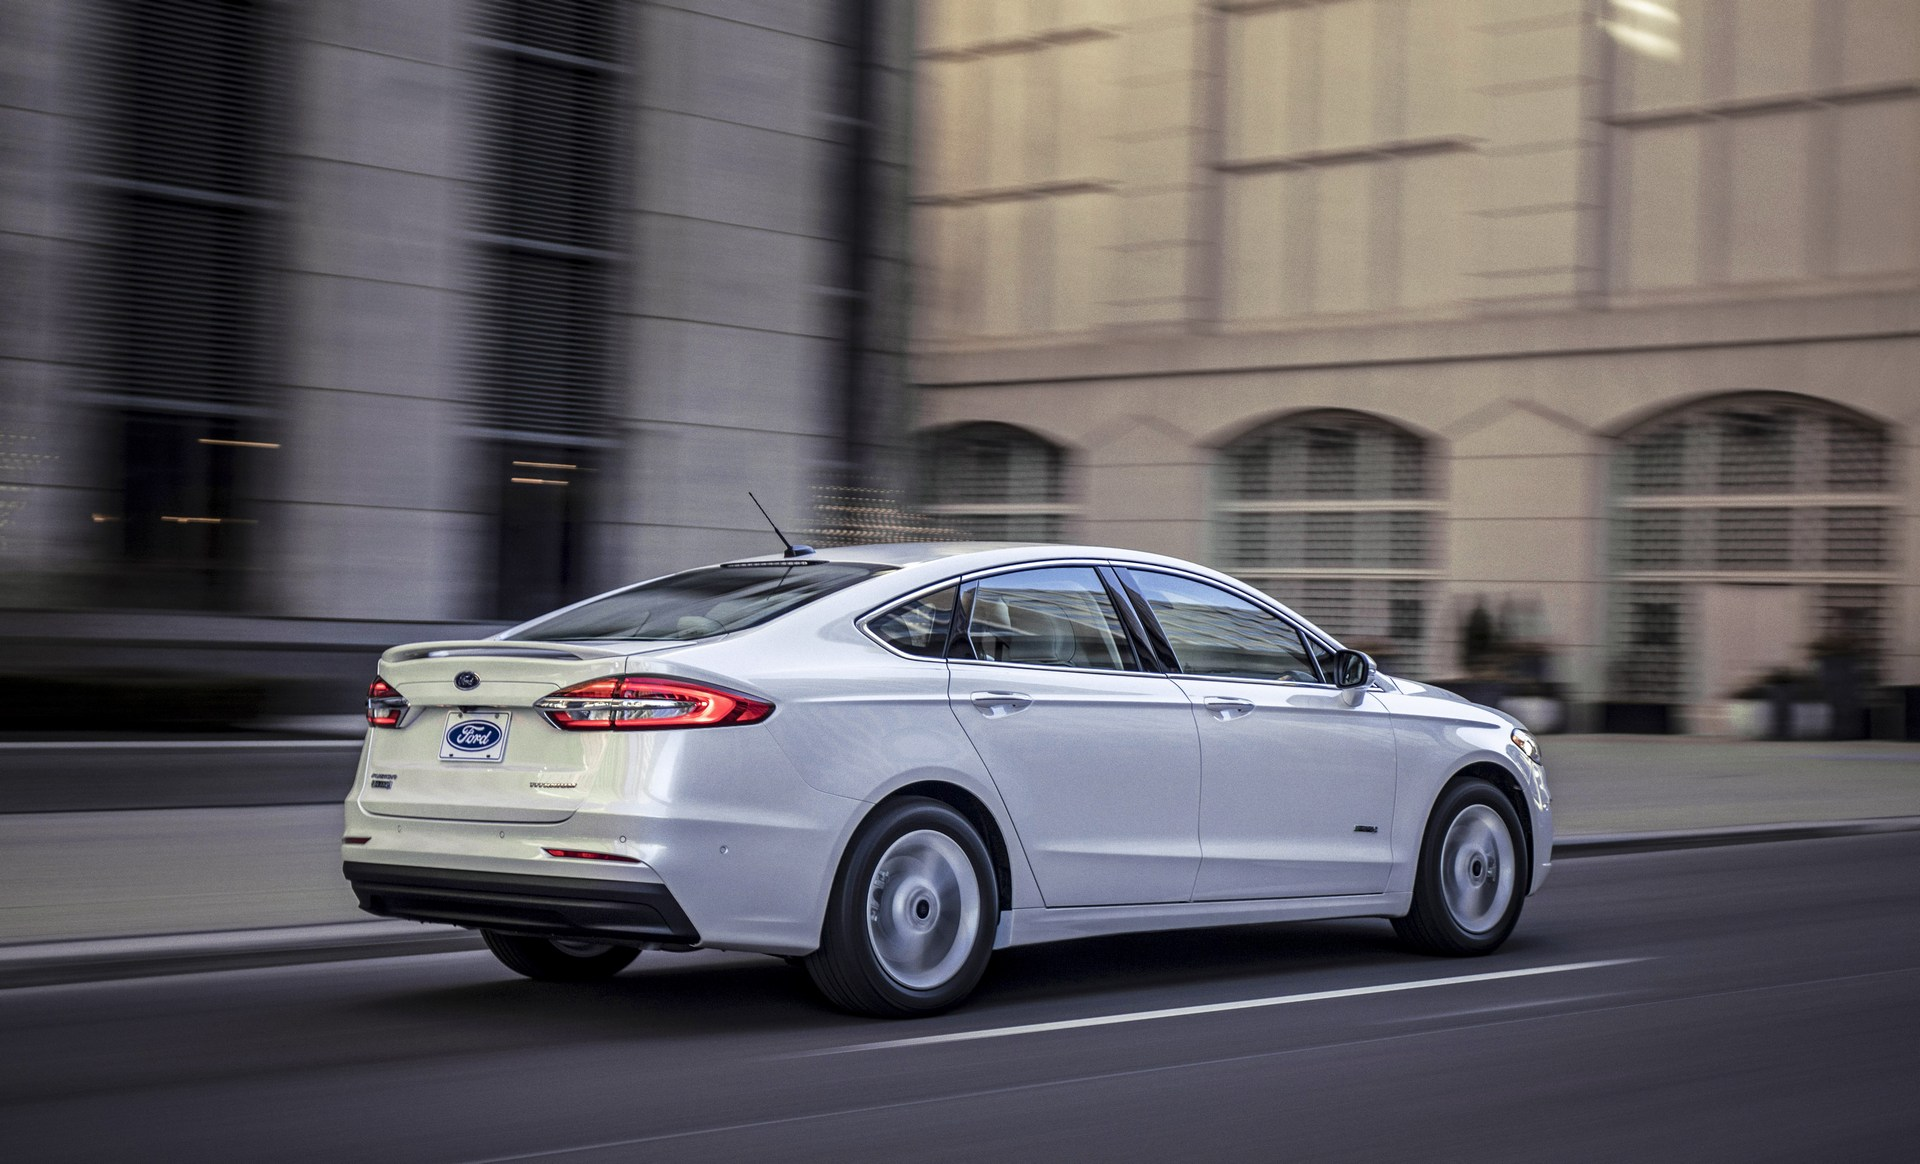 2019 Ford Fusion Debuts With Minor Design Changes, More Safety Tech - autoevolution